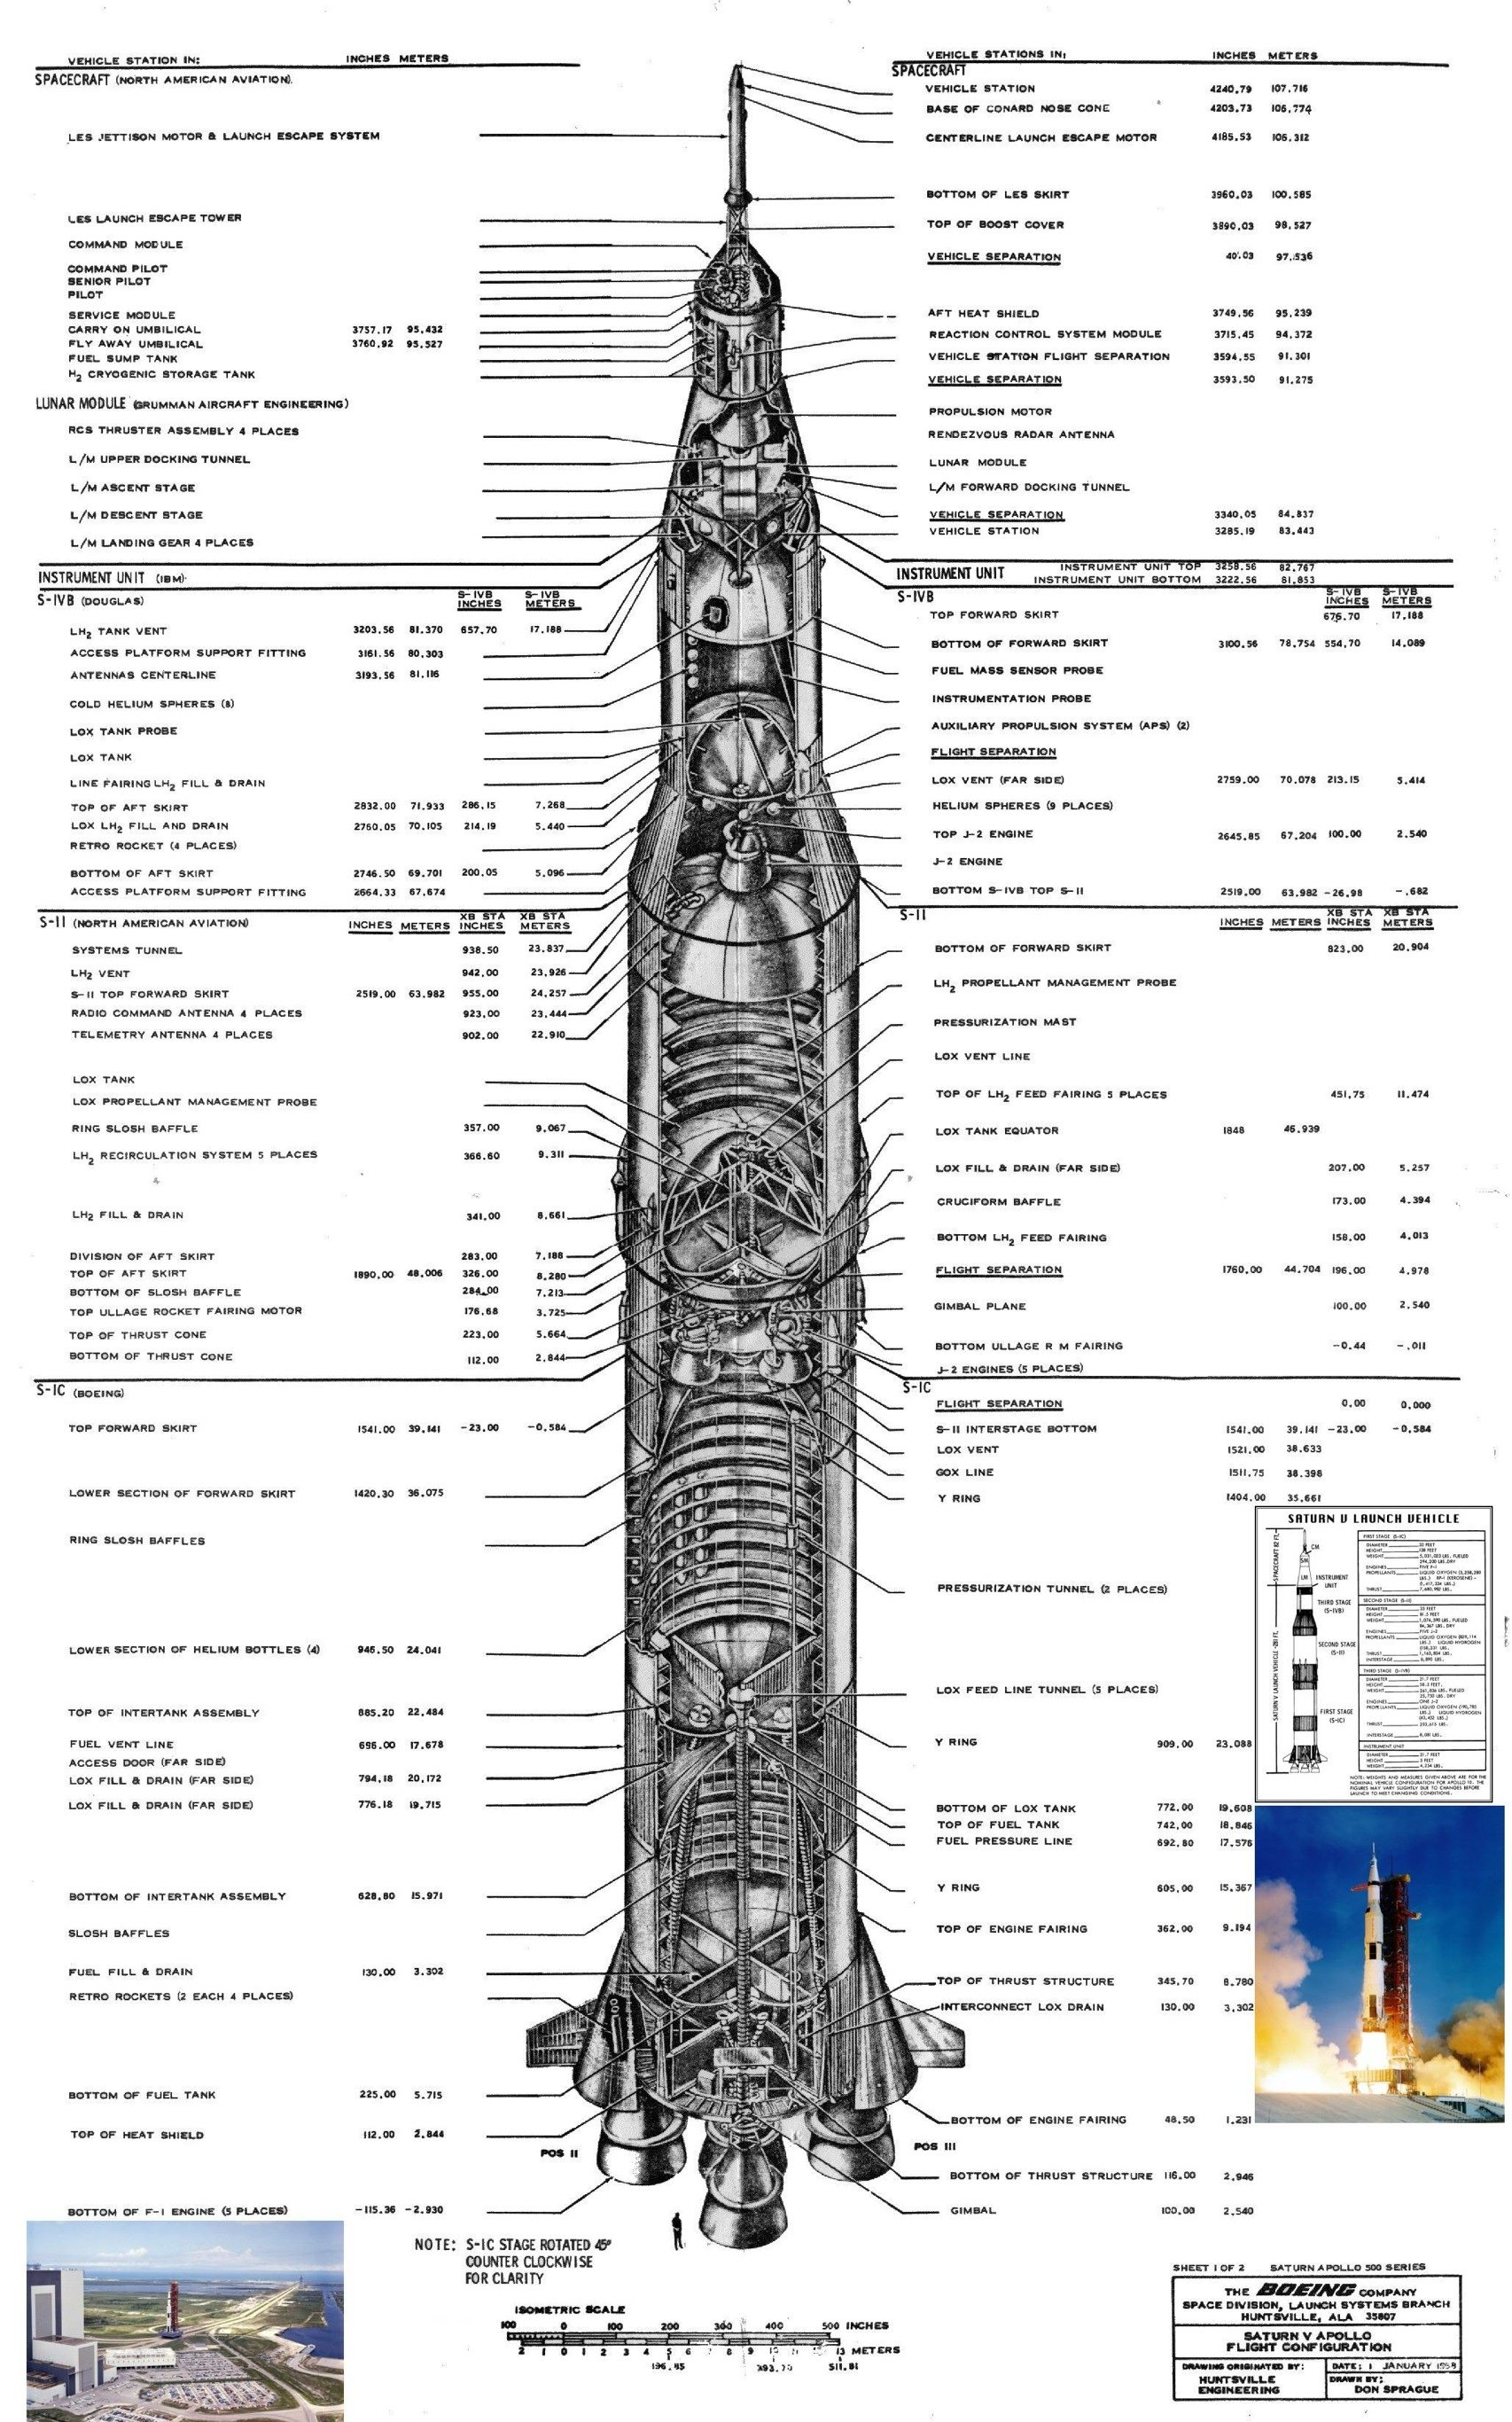 Diagram of the Saturn V Rocket cut in half « Adafruit